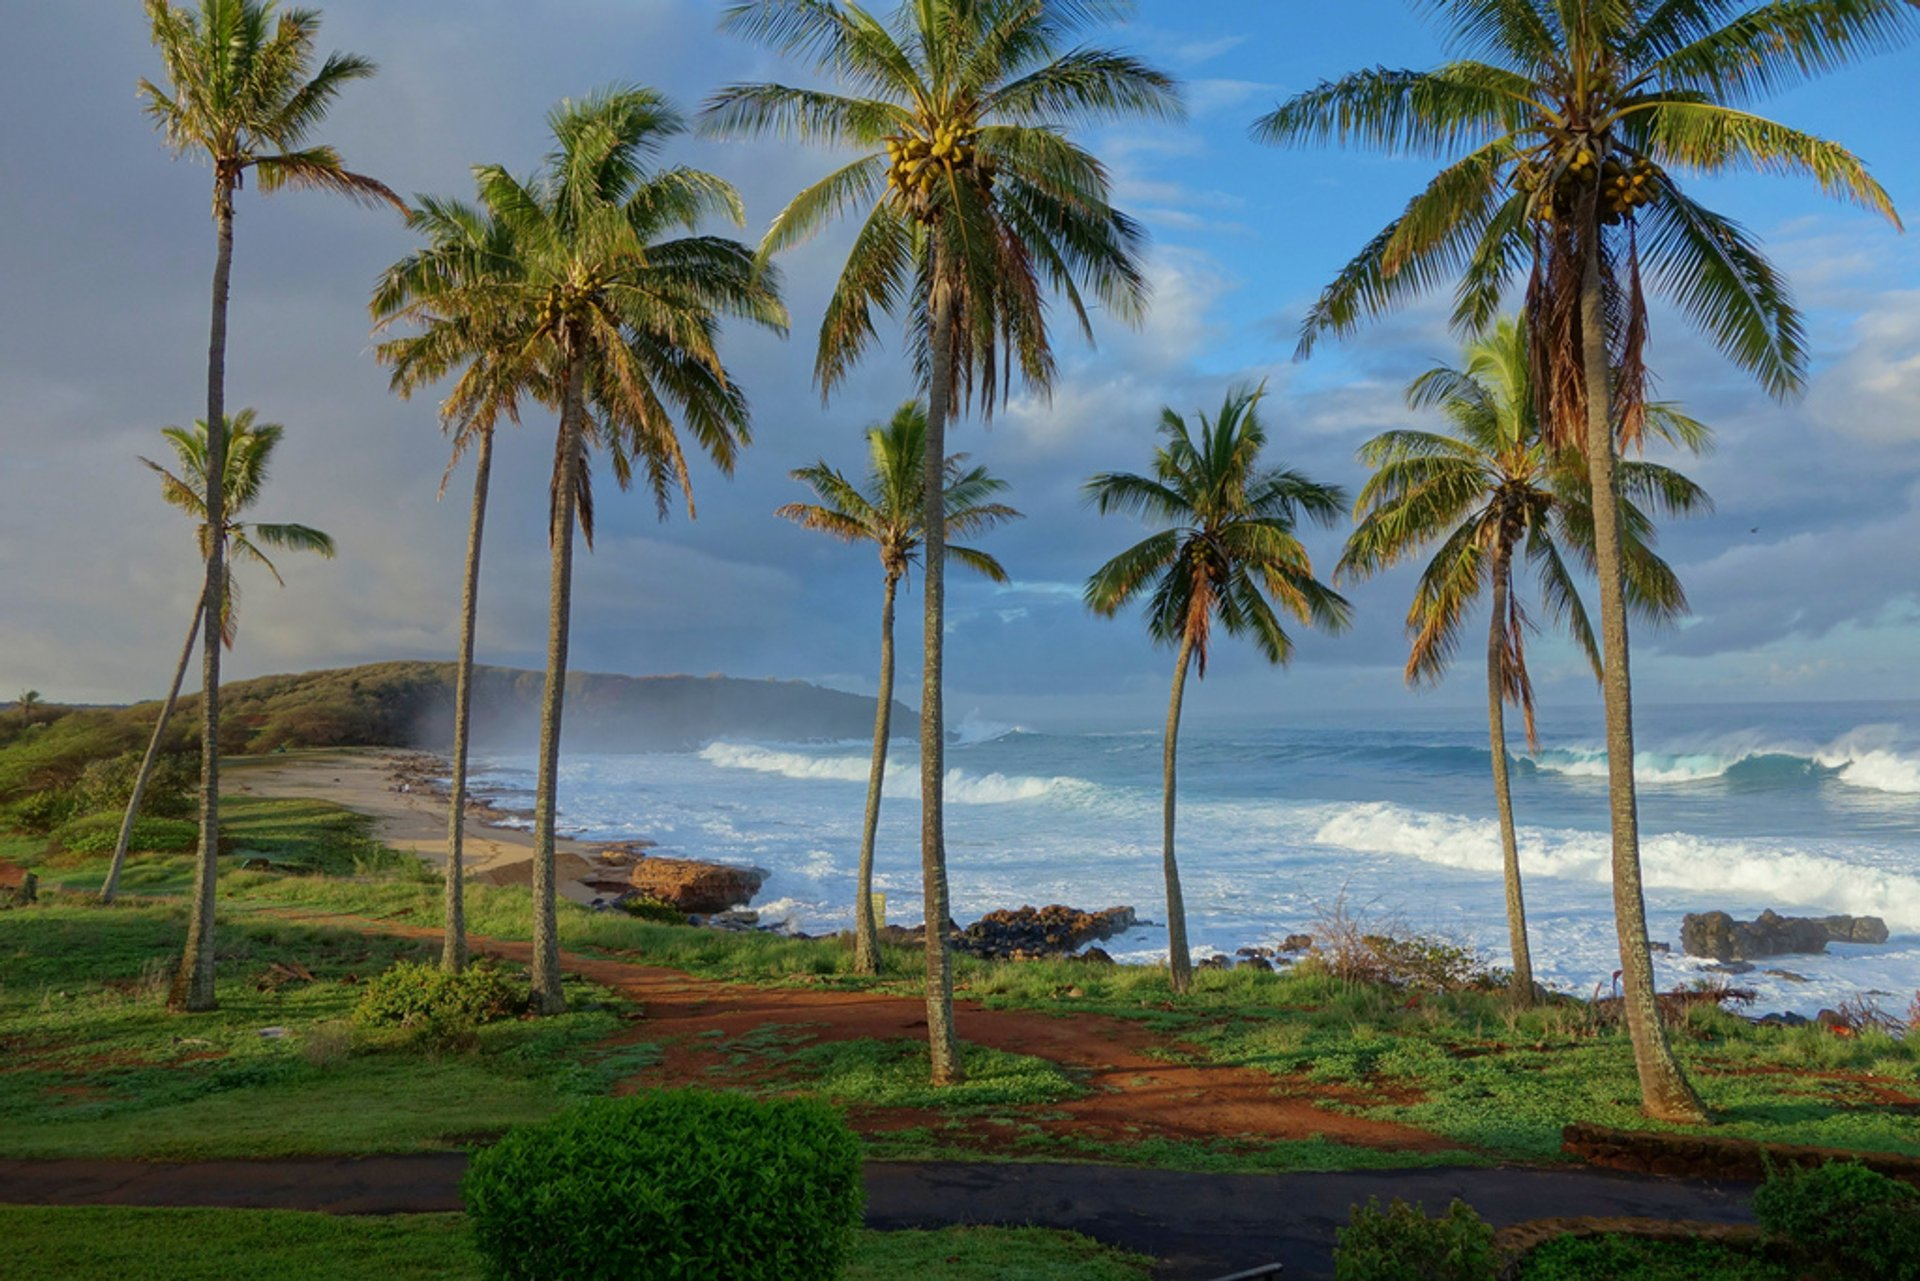 Winter (Wet Season) in Hawaii 2020 - Best Time